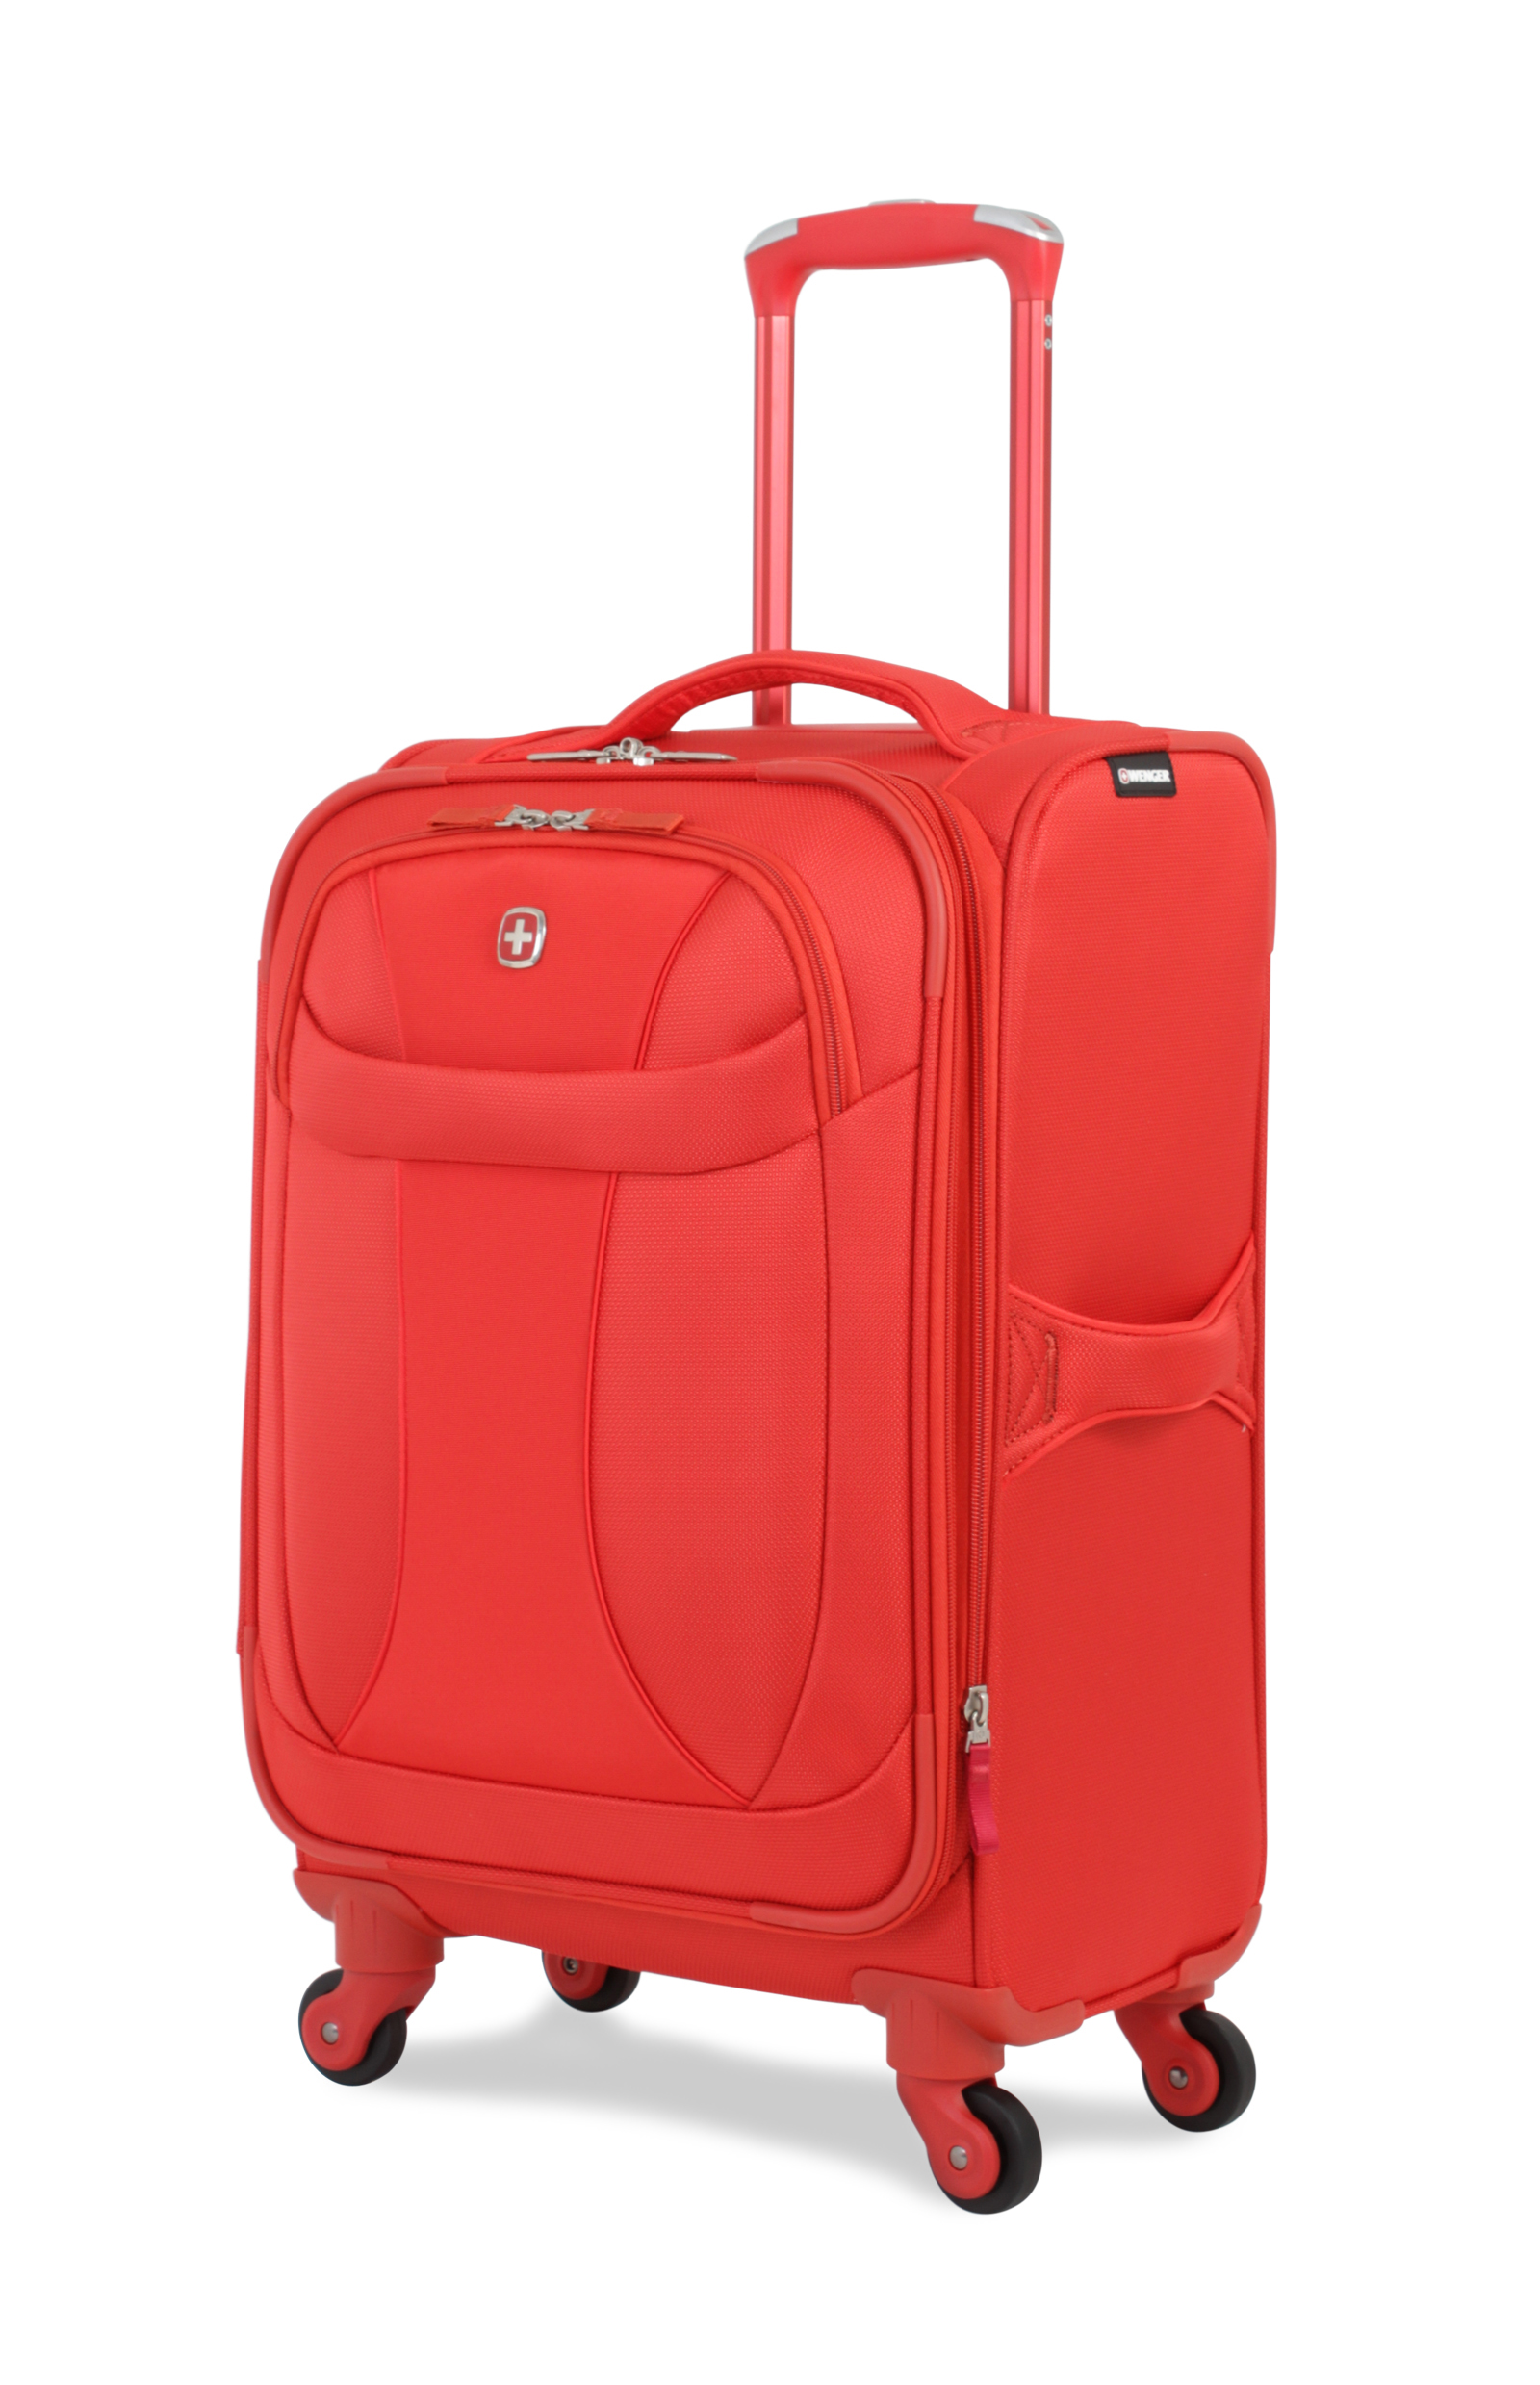 SWISSGEAR 7208 20 Expandable Liteweight Carry-On Spinner ...